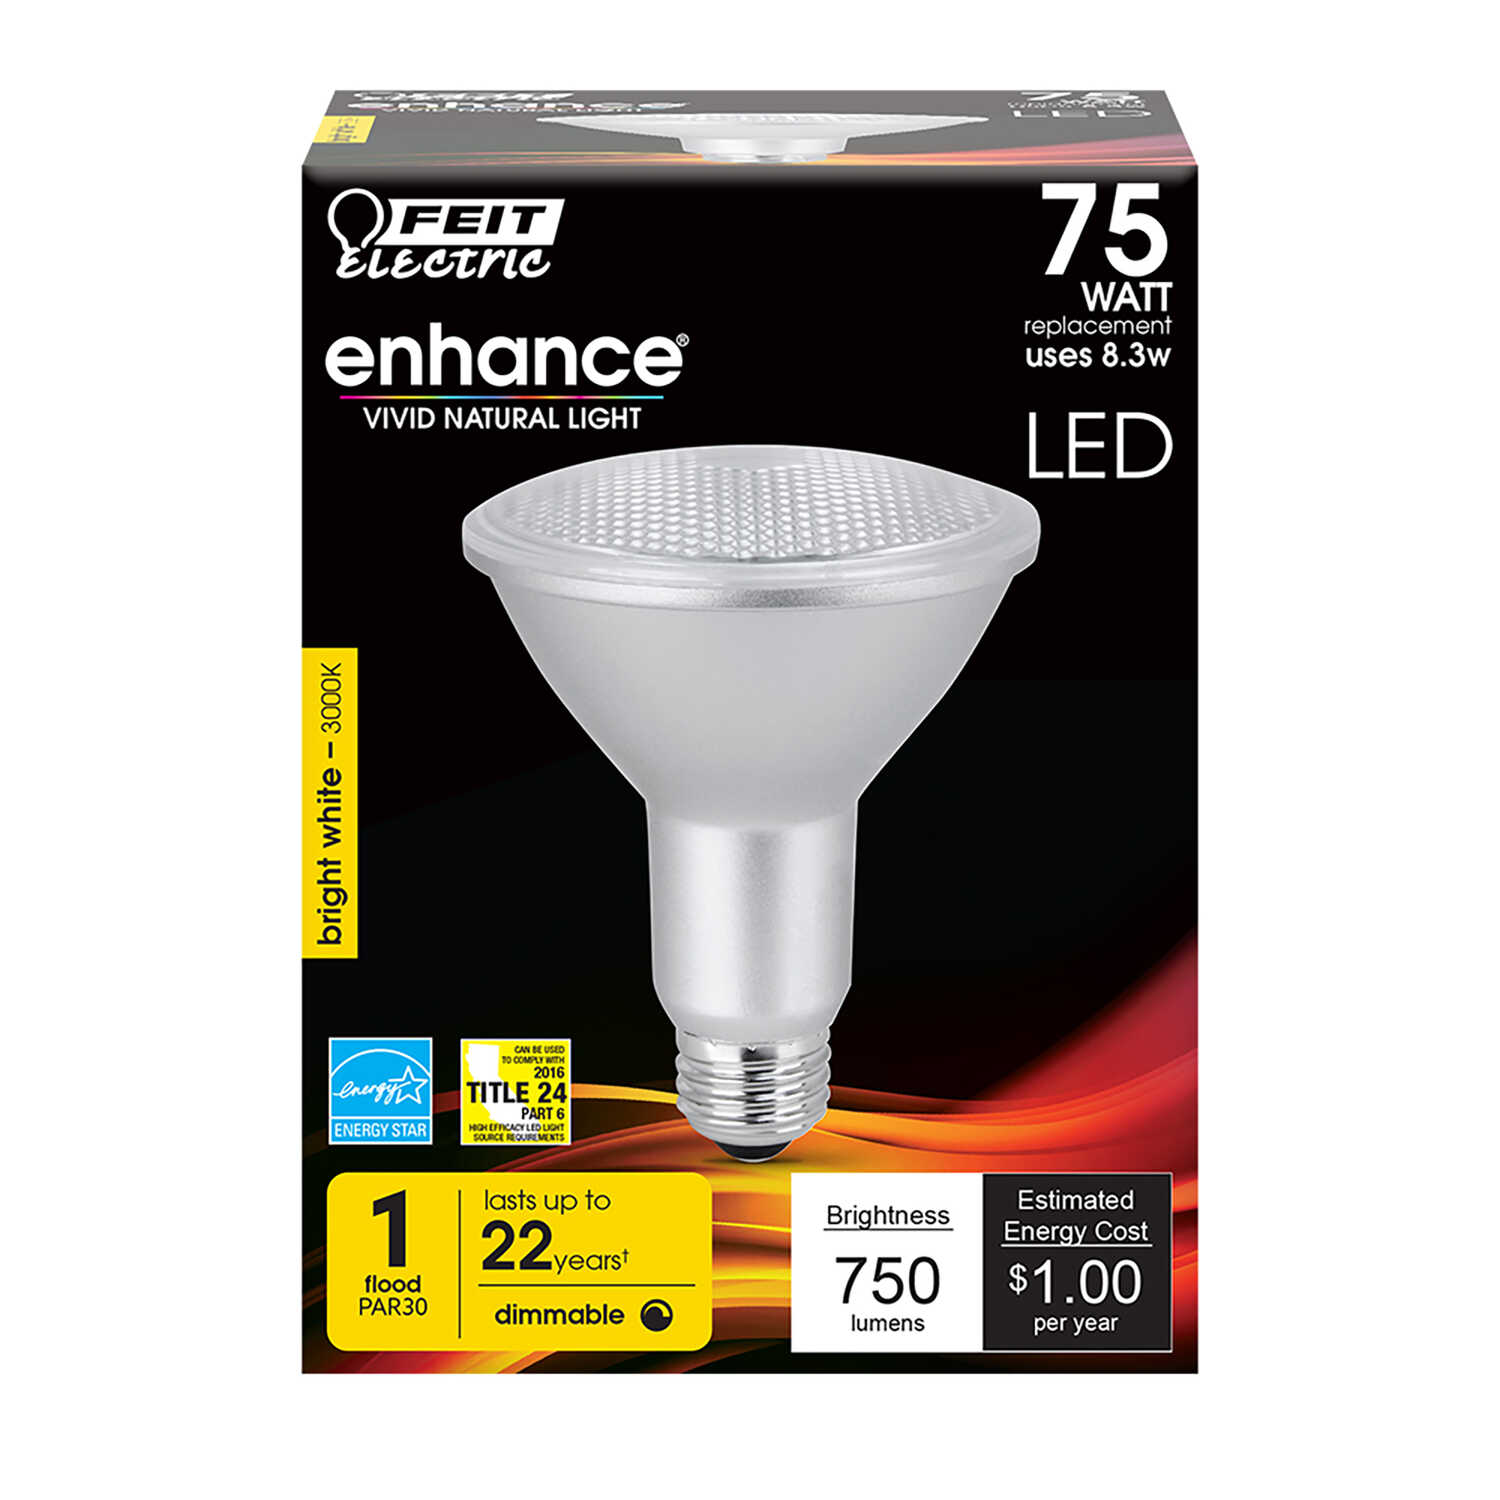 FEIT Electric  8.3 watts PAR30  LED Bulb  750 lumens Bright White  Floodlight  75 Watt Equivalence